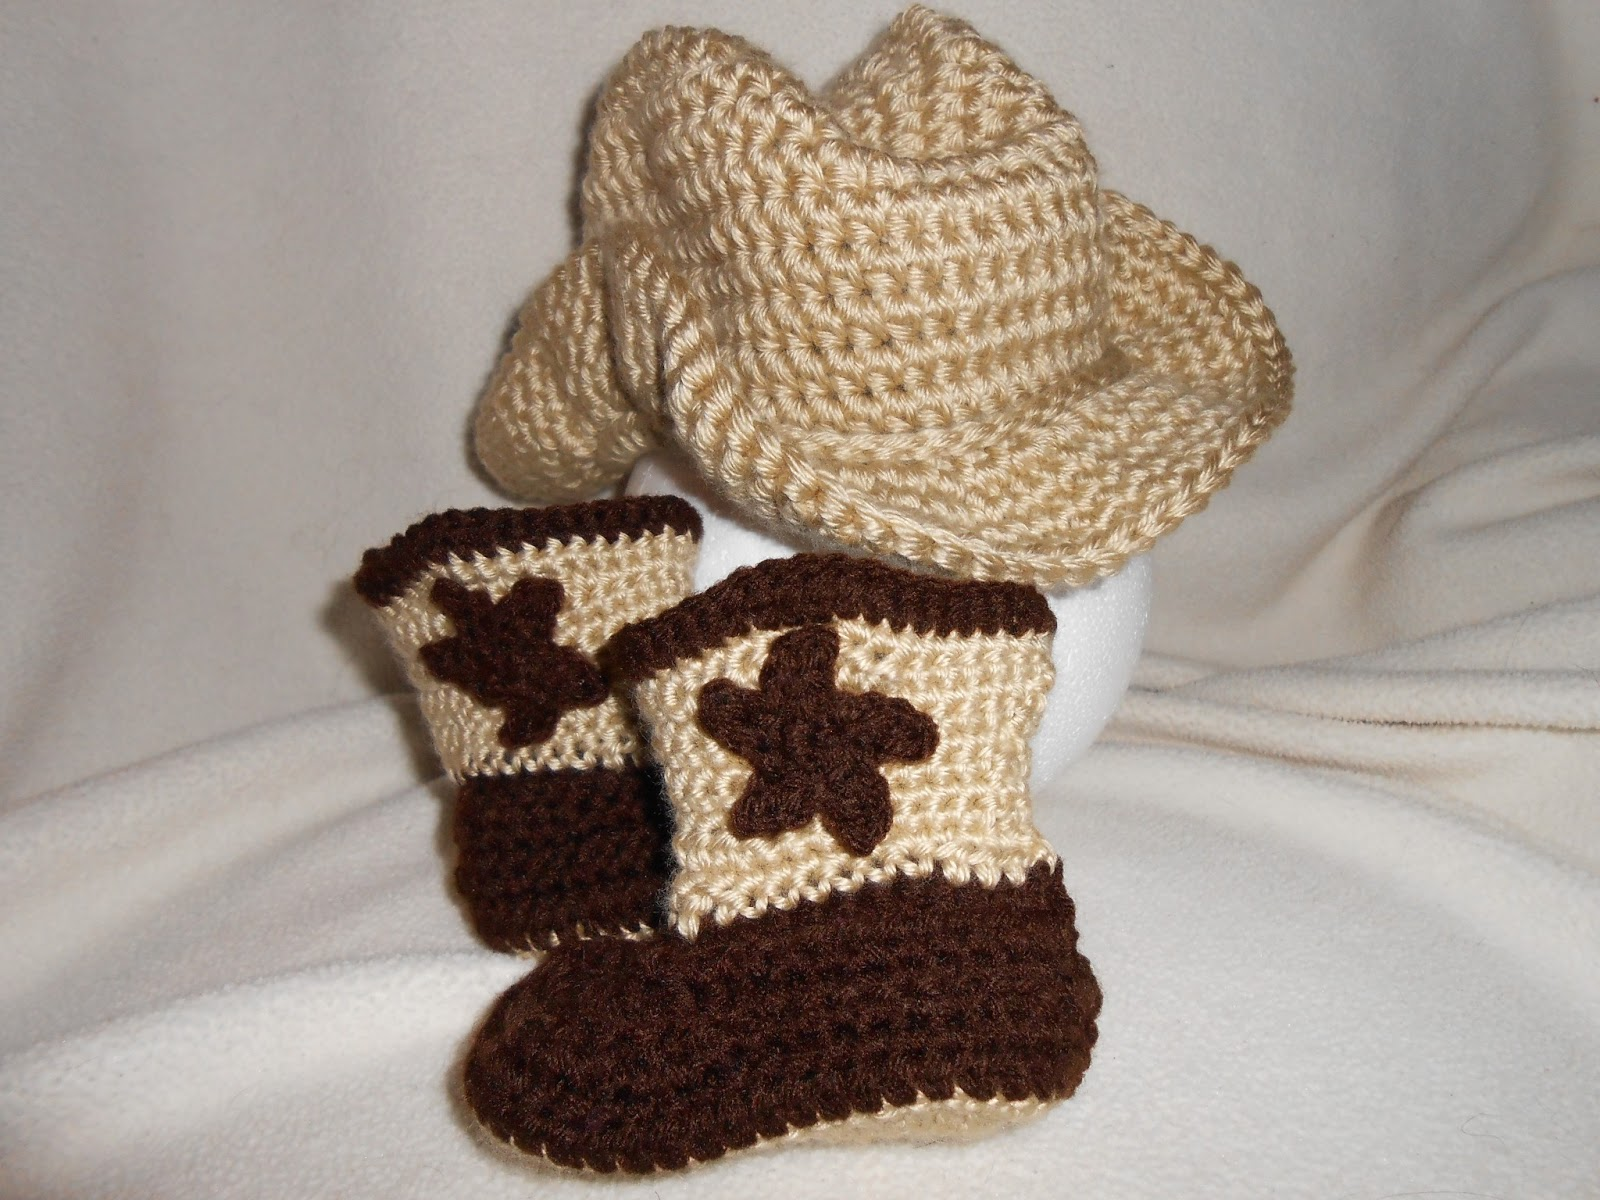 Crochet Baby Cowboy Booties Pattern Cowboy hat and boots ...